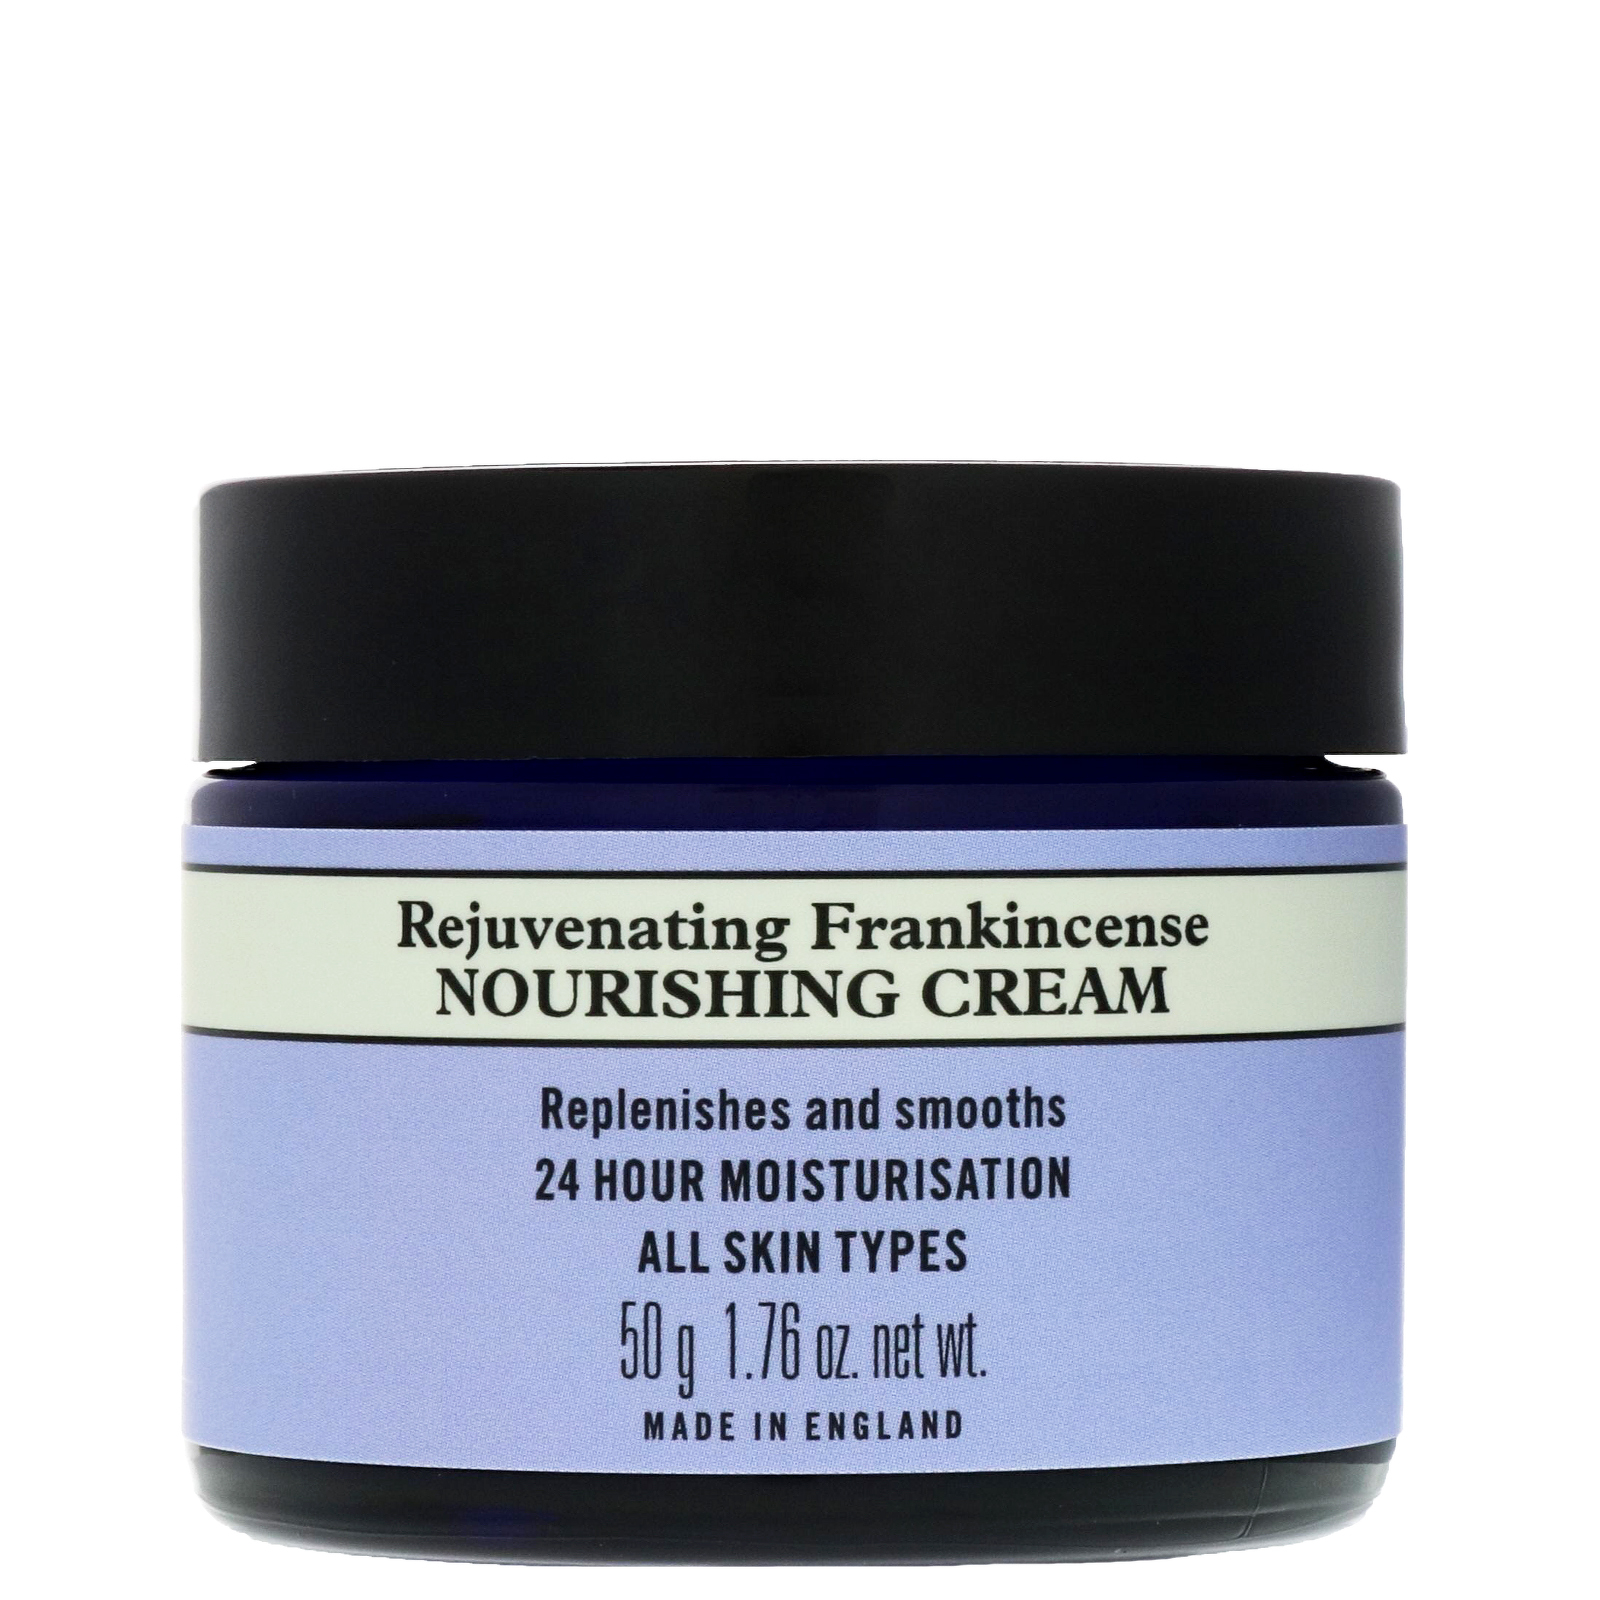 Neal's Yard Remedies Facial Moisturisers Frankincense Nourishing Cream 50g